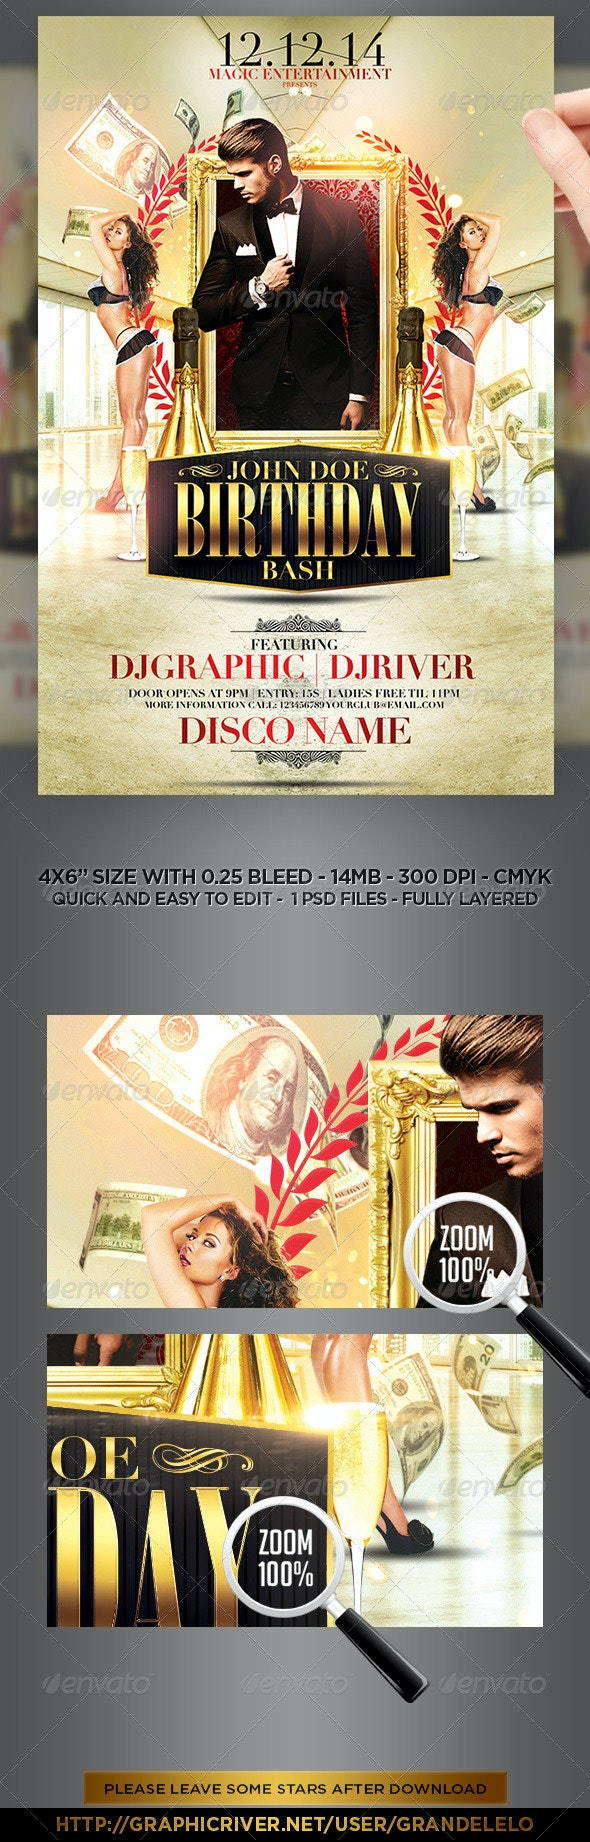 Classy Birthday Bash Flyer Template - Clubs & Parties Events